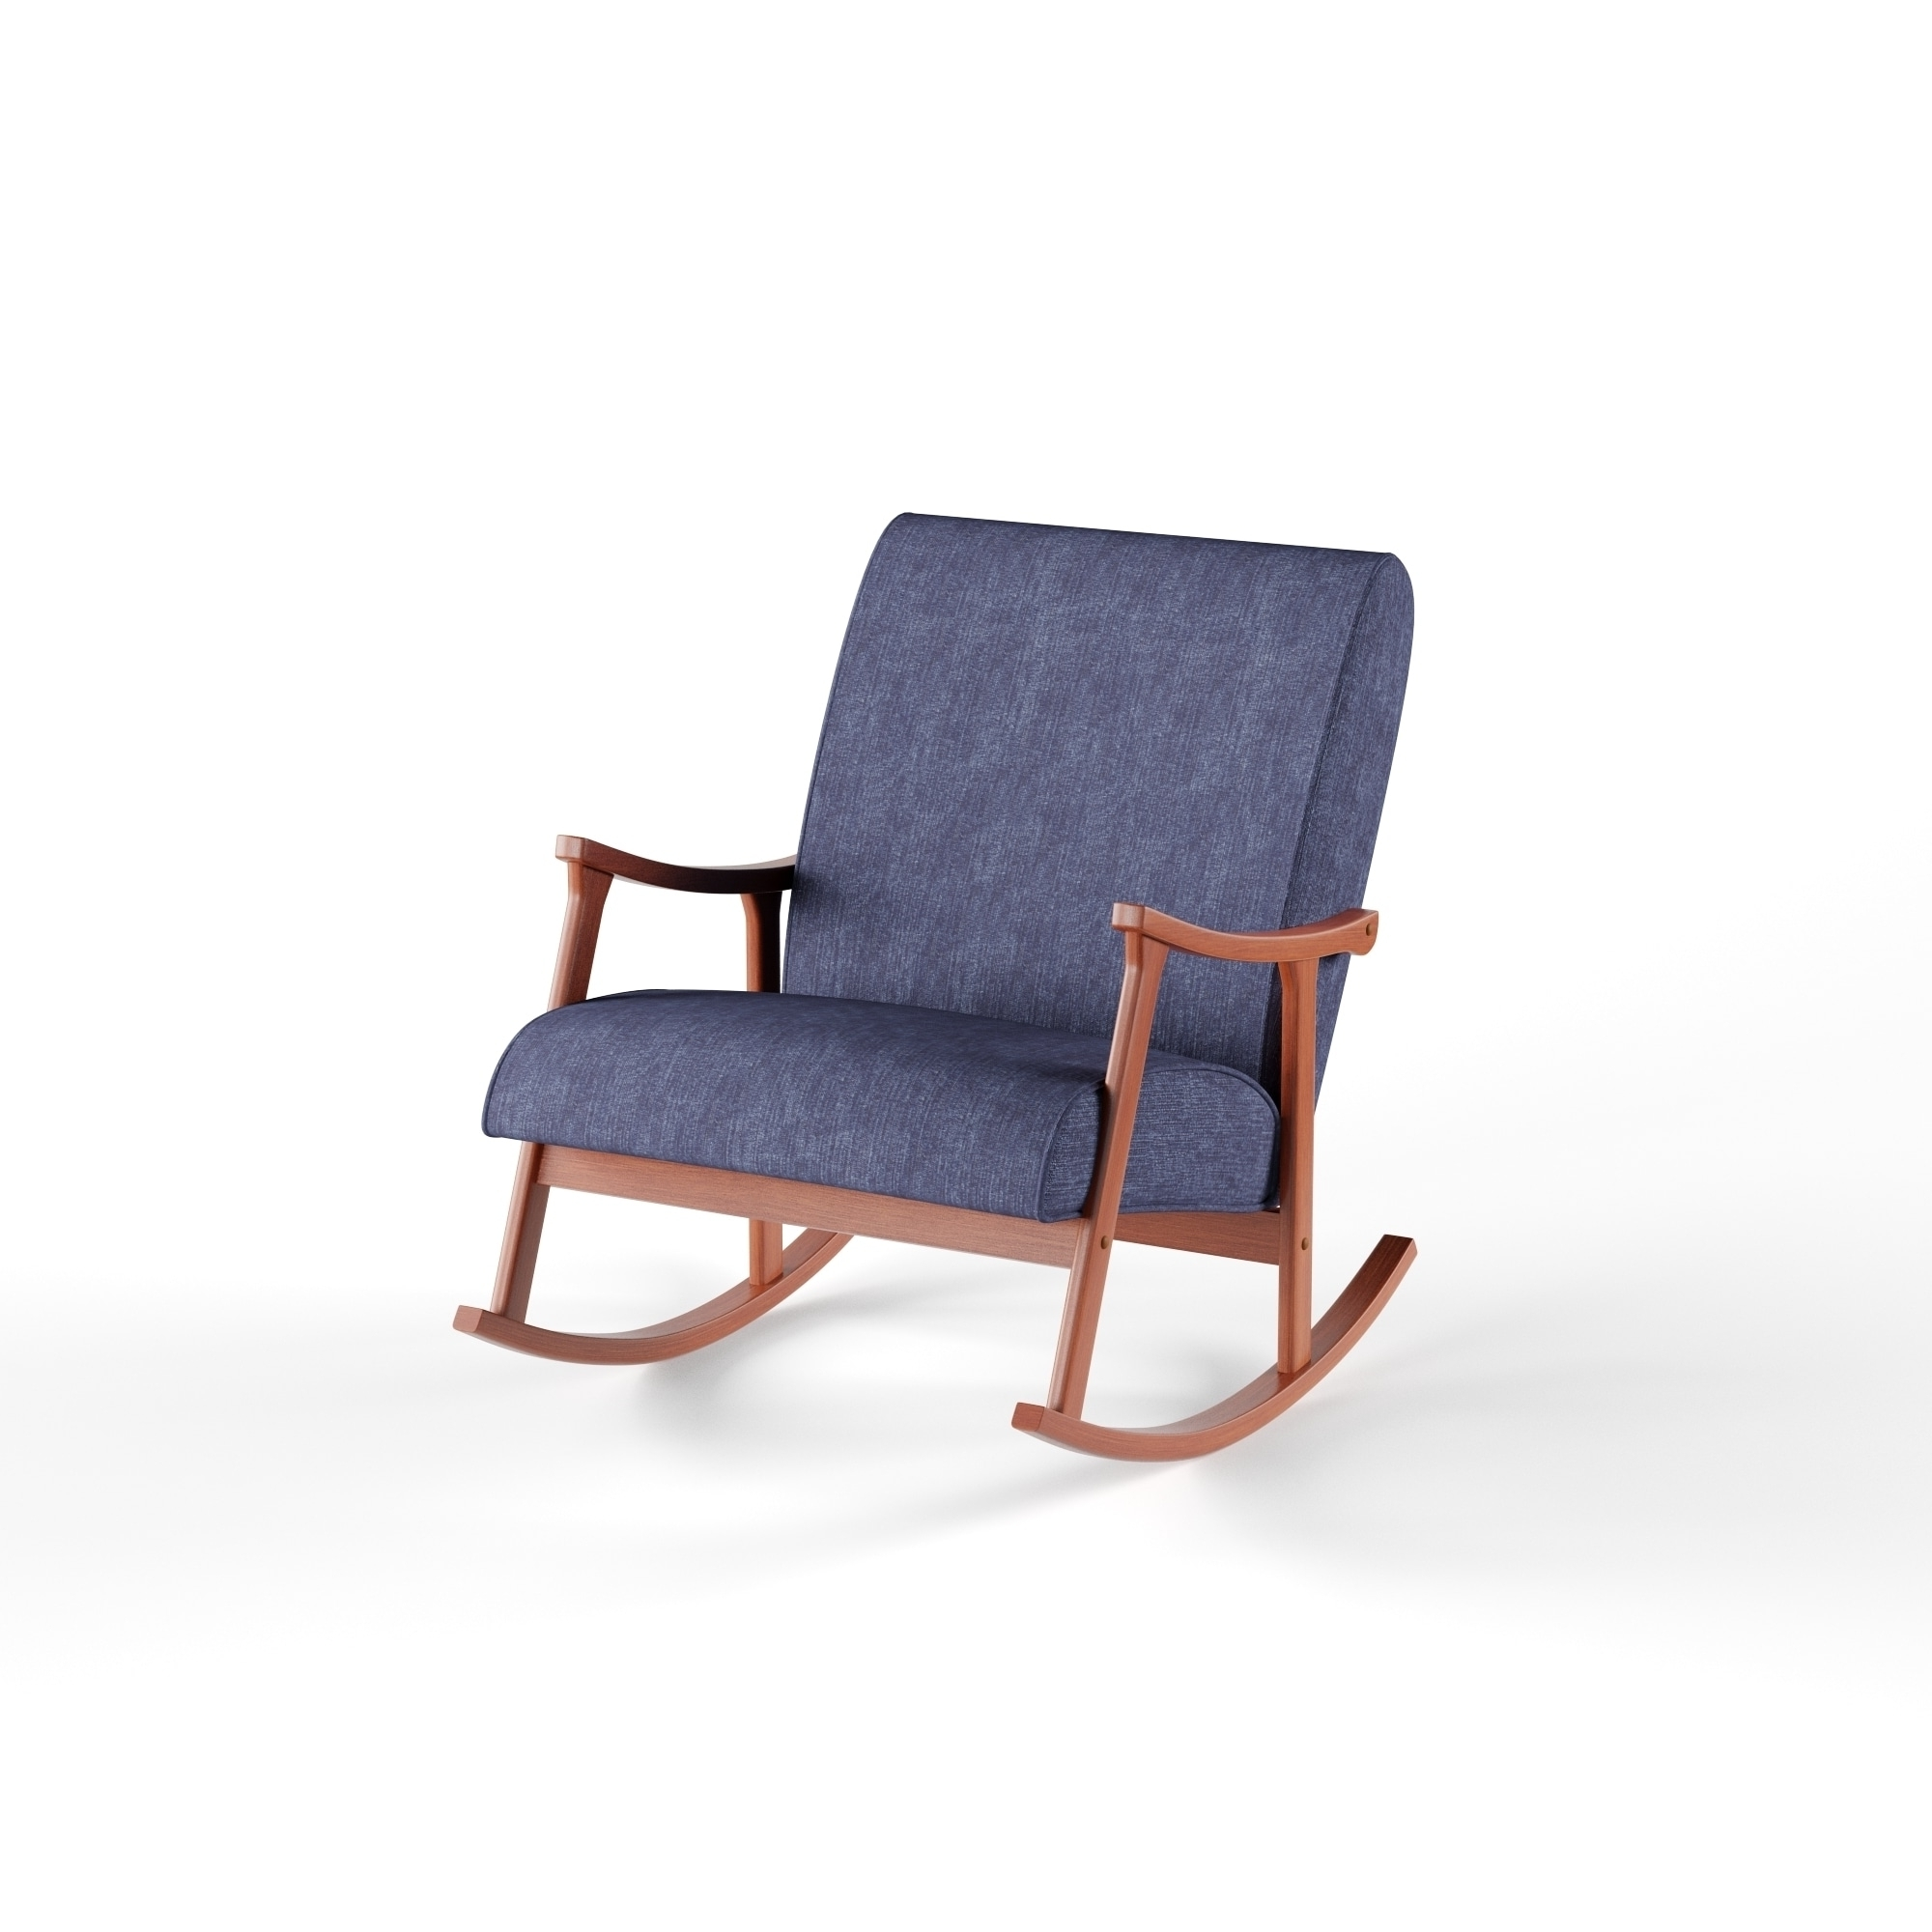 Most Current Shop Carson Carrington Retro Indigo Wooden Rocking Chair – Free Regarding Retro Rocking Chairs (View 14 of 20)